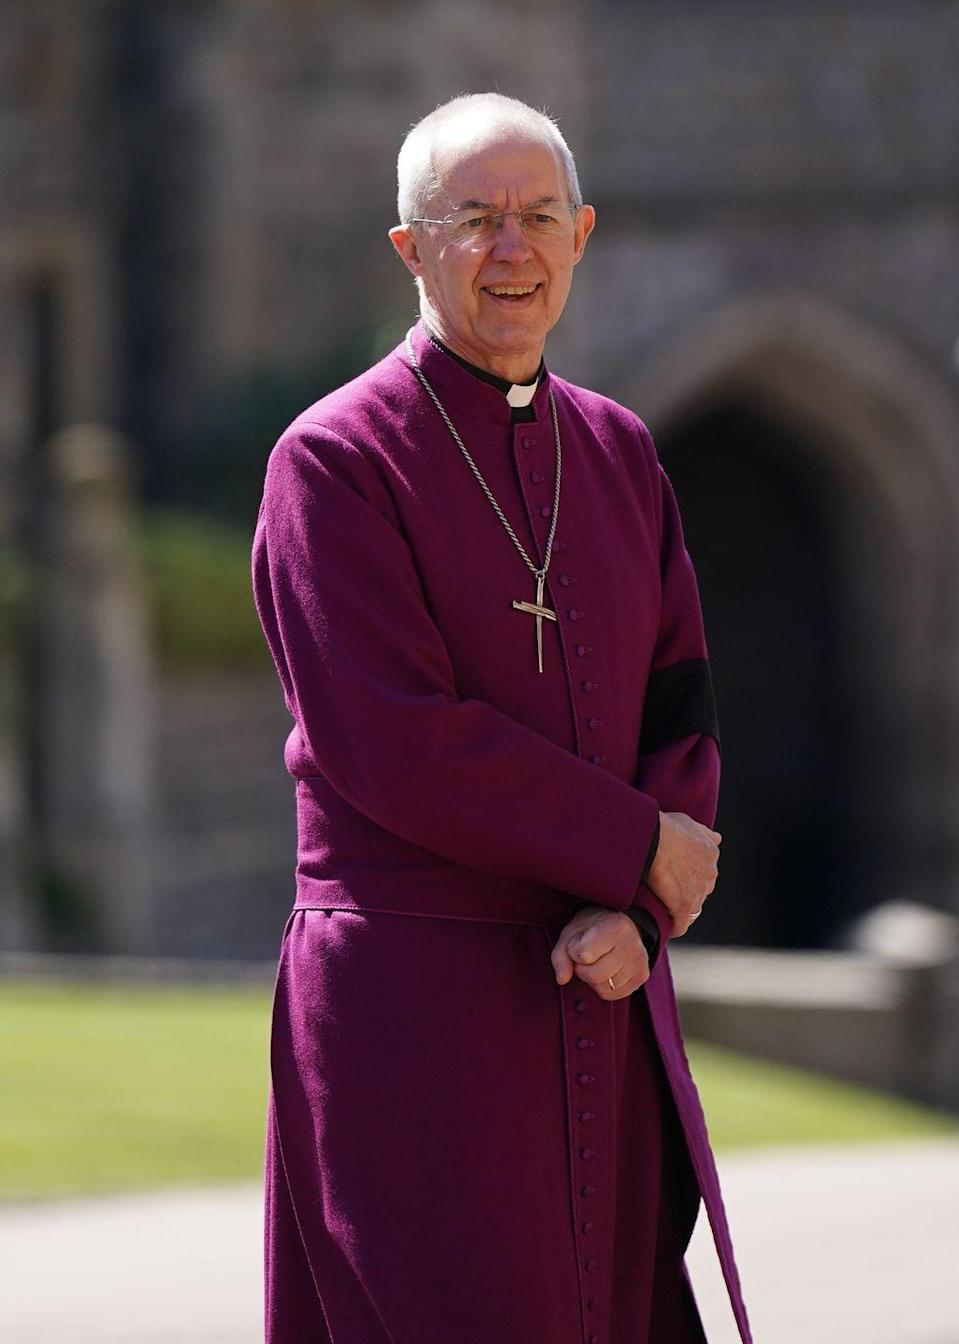 <p>The Archbishop of Canterbury Justin Welby at Windsor Castle.</p>